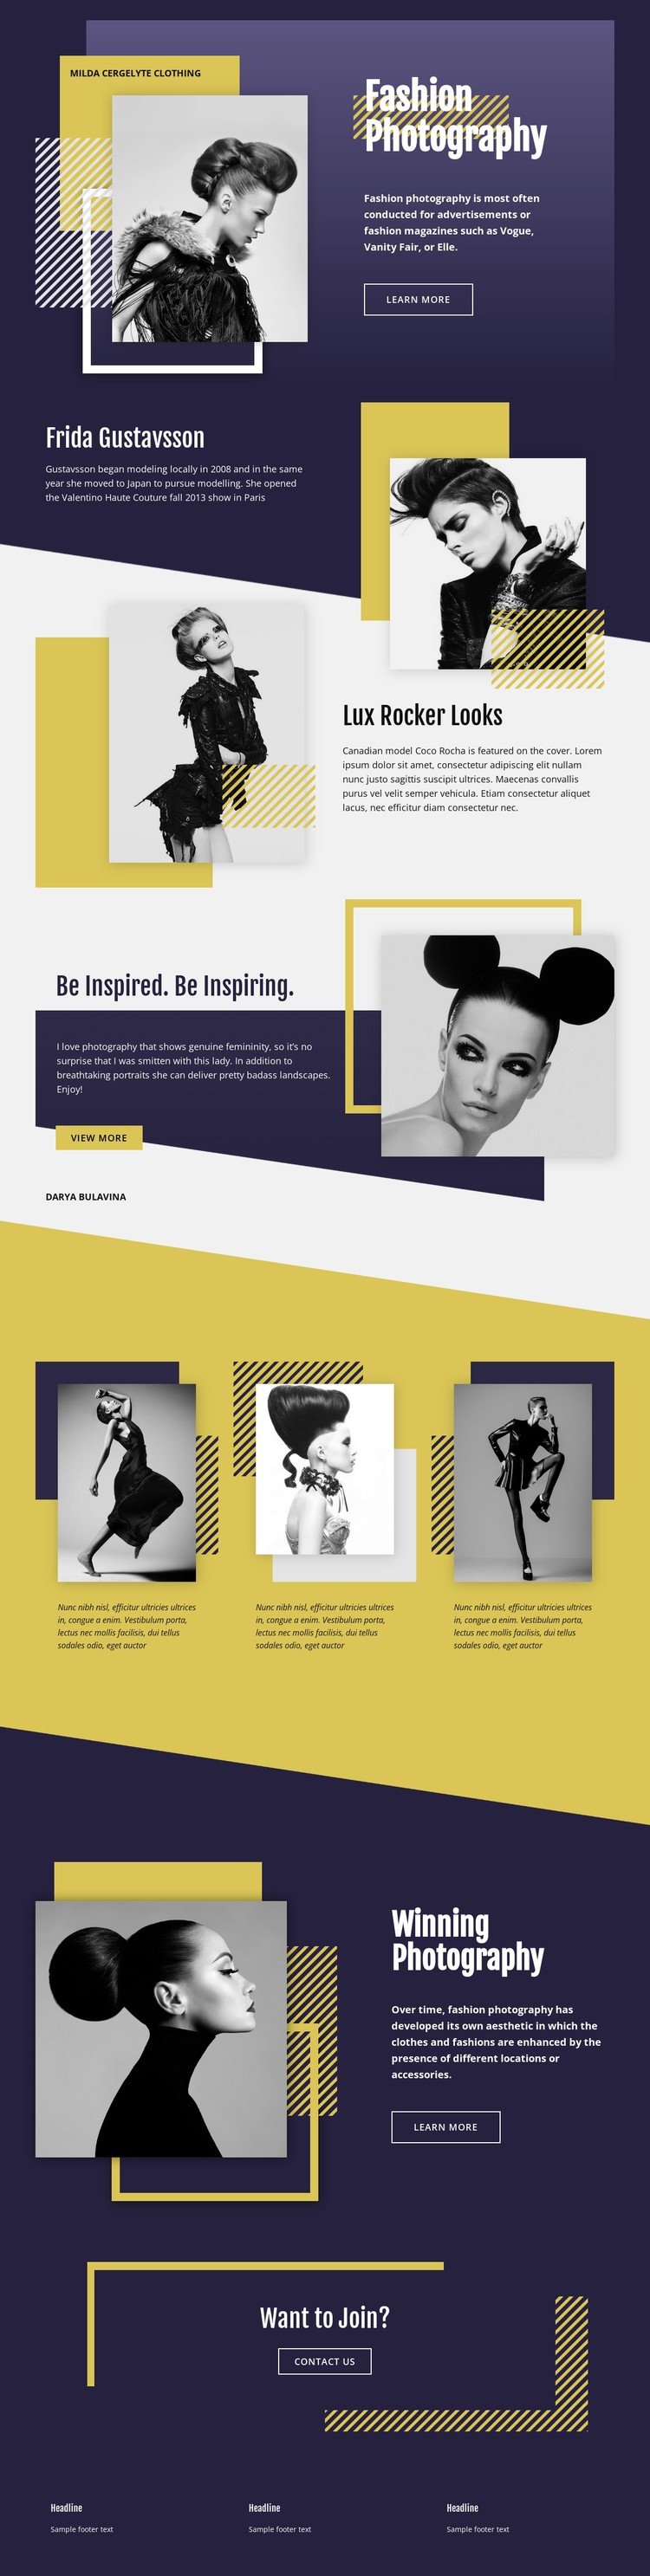 Fashion Photography Overlapping Static Site Generator